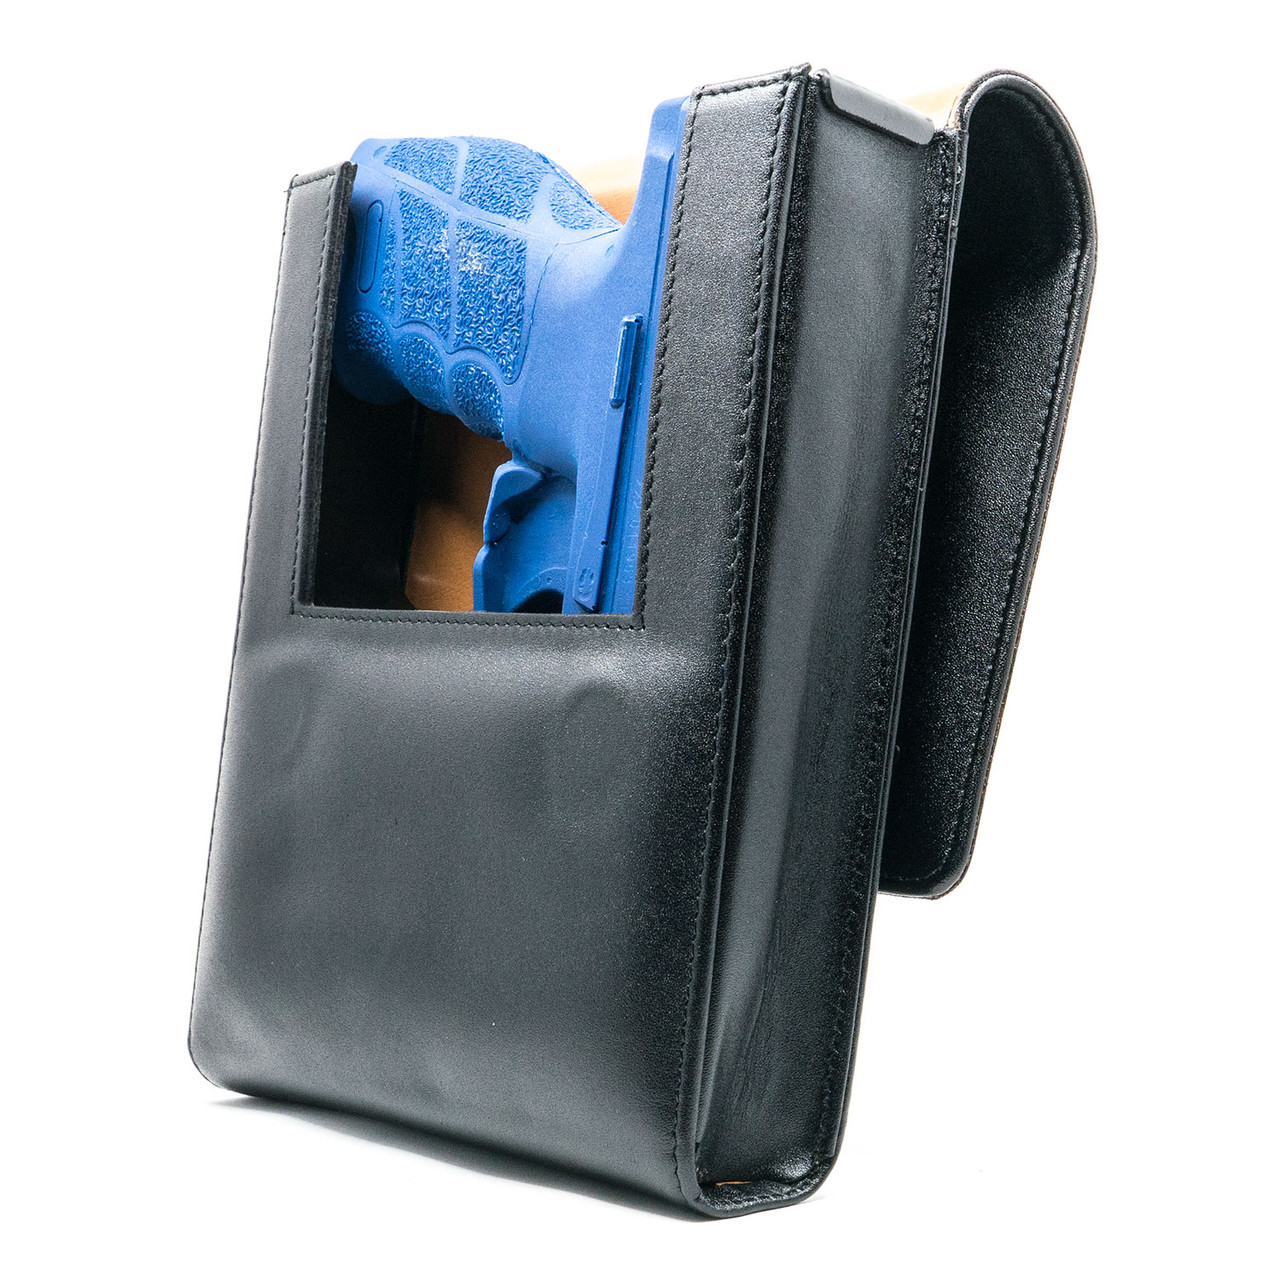 HK VP9 Sneaky Pete Holster (Belt Clip)